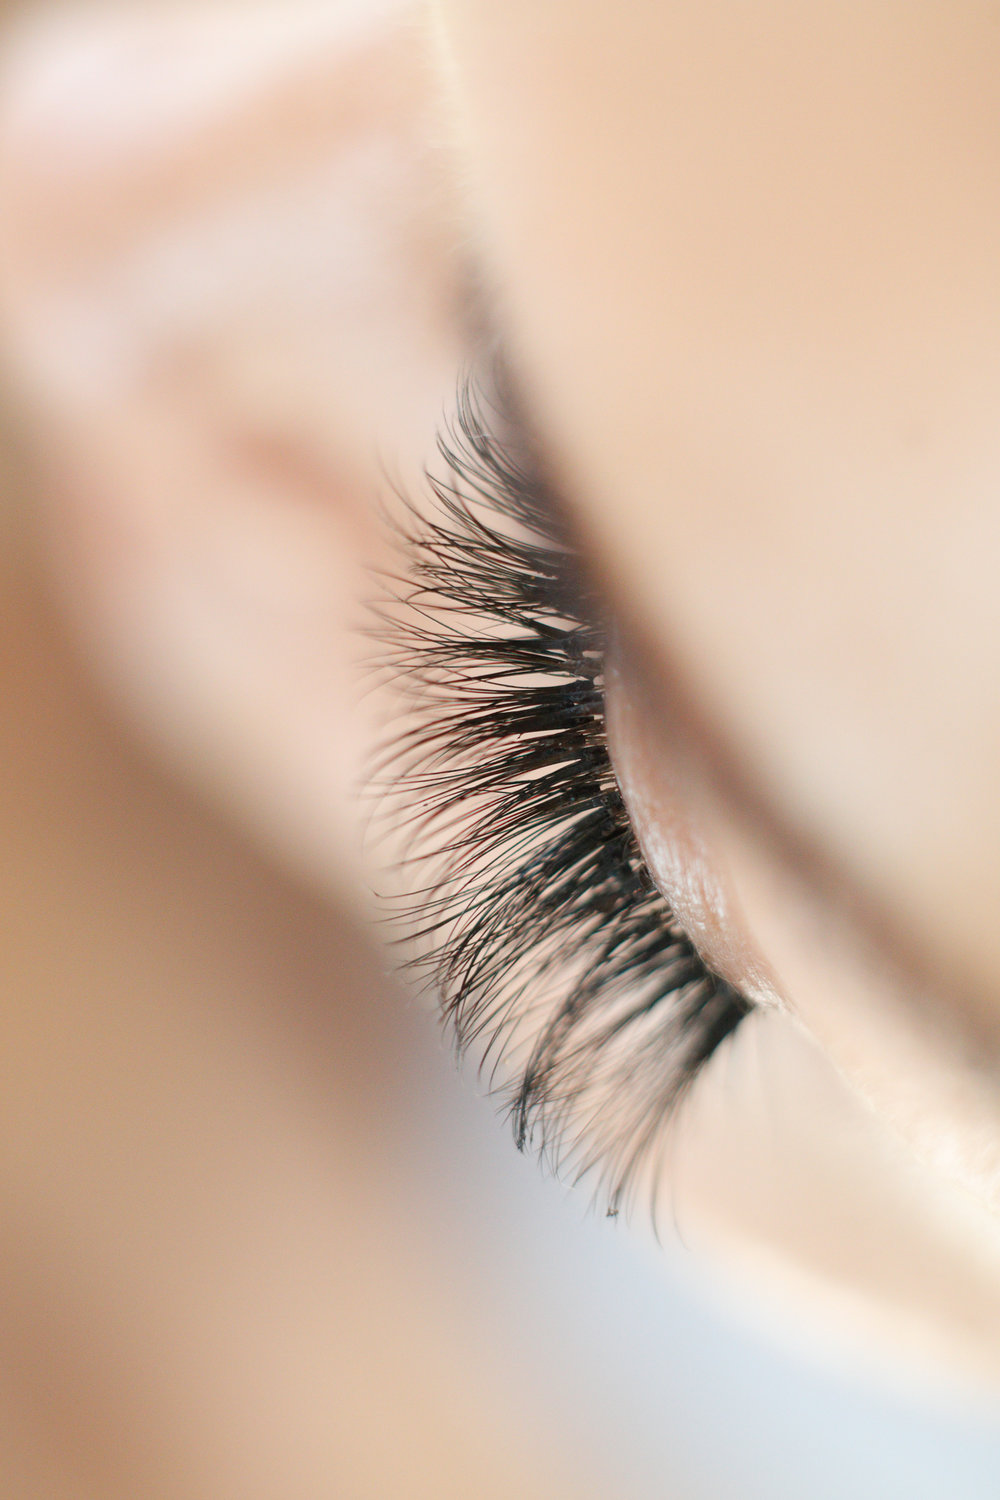 e2a7801fdef So if you are looking for 5D semi-permanent lash extentions in Norwich then  make sure you call or message us today to book your appointment